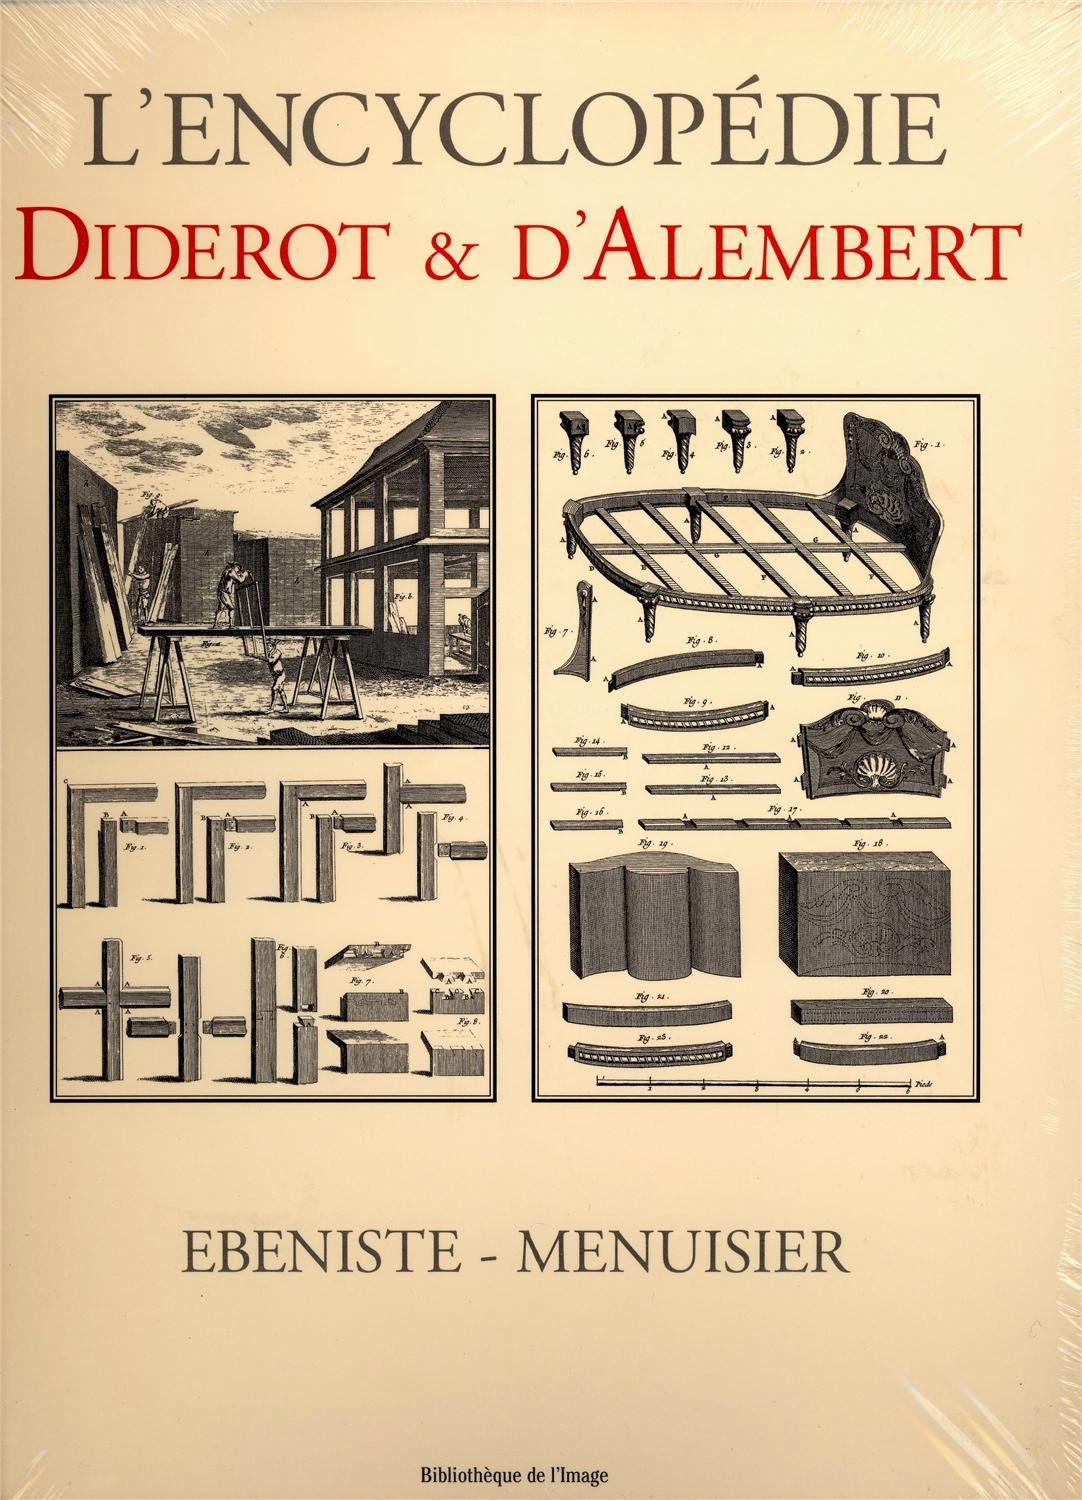 new essays on diderot New essays on diderotpdf new essays on diderot new essays on diderot id book number: d41d8cd98f00b204e9800998ecf8427e language: en (united states.